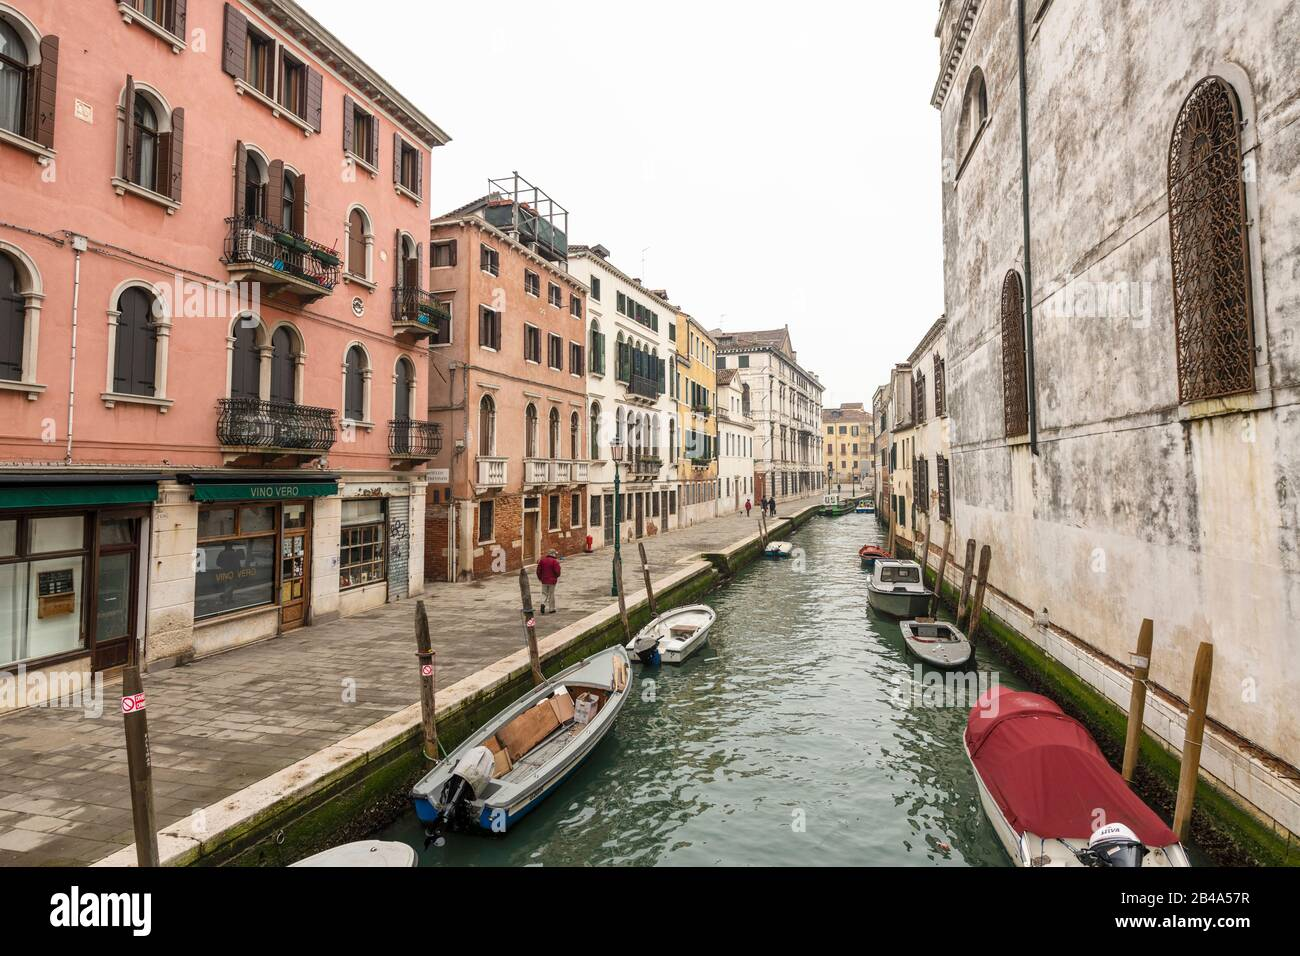 Venice, February 25th - March 3rd. 2020: Coronavirus epidemic has had the effect of detering tourists from visiting the island and has resulted in Gondoliers losing custom. Stock Photo